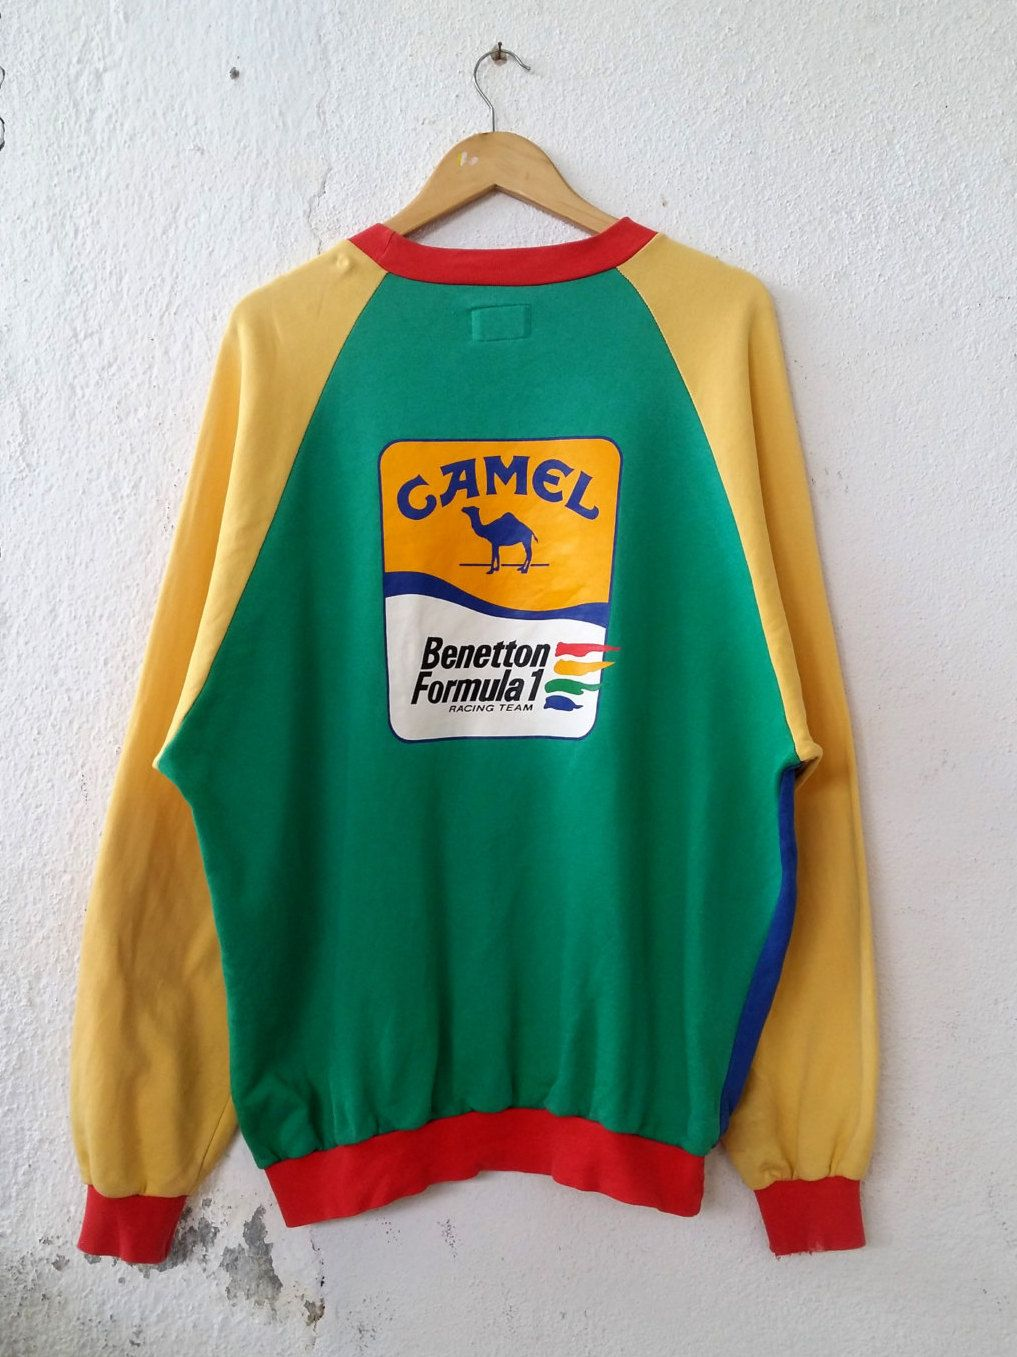 Rare Vintage 90 s BENETTON Formula 1 CAMEL Multi Color Sweatshirt with  Small Spell Out Embroidered and Back Big Logo Sweater Size XL VSS137 by ... d7230c5da9